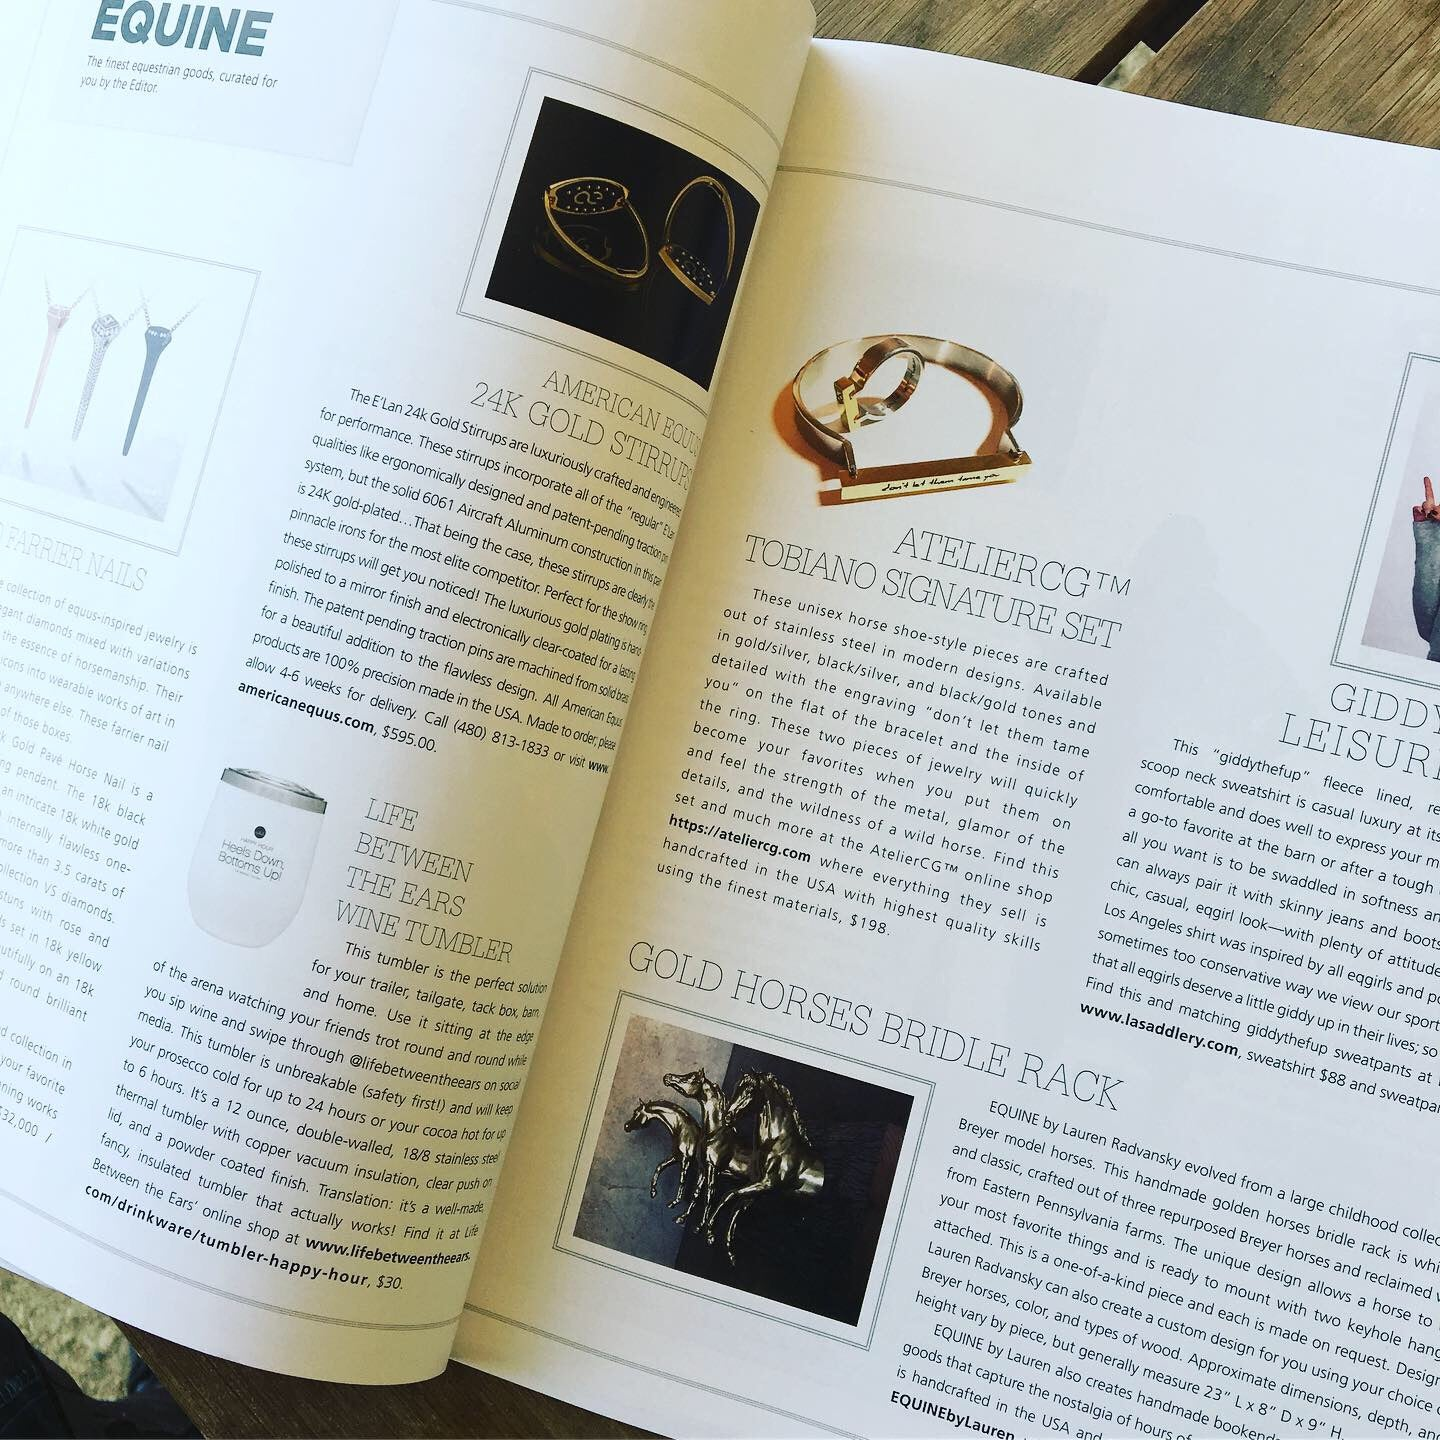 AtelierCG - Tobiano Signature Set featured at EQ AM Magazine